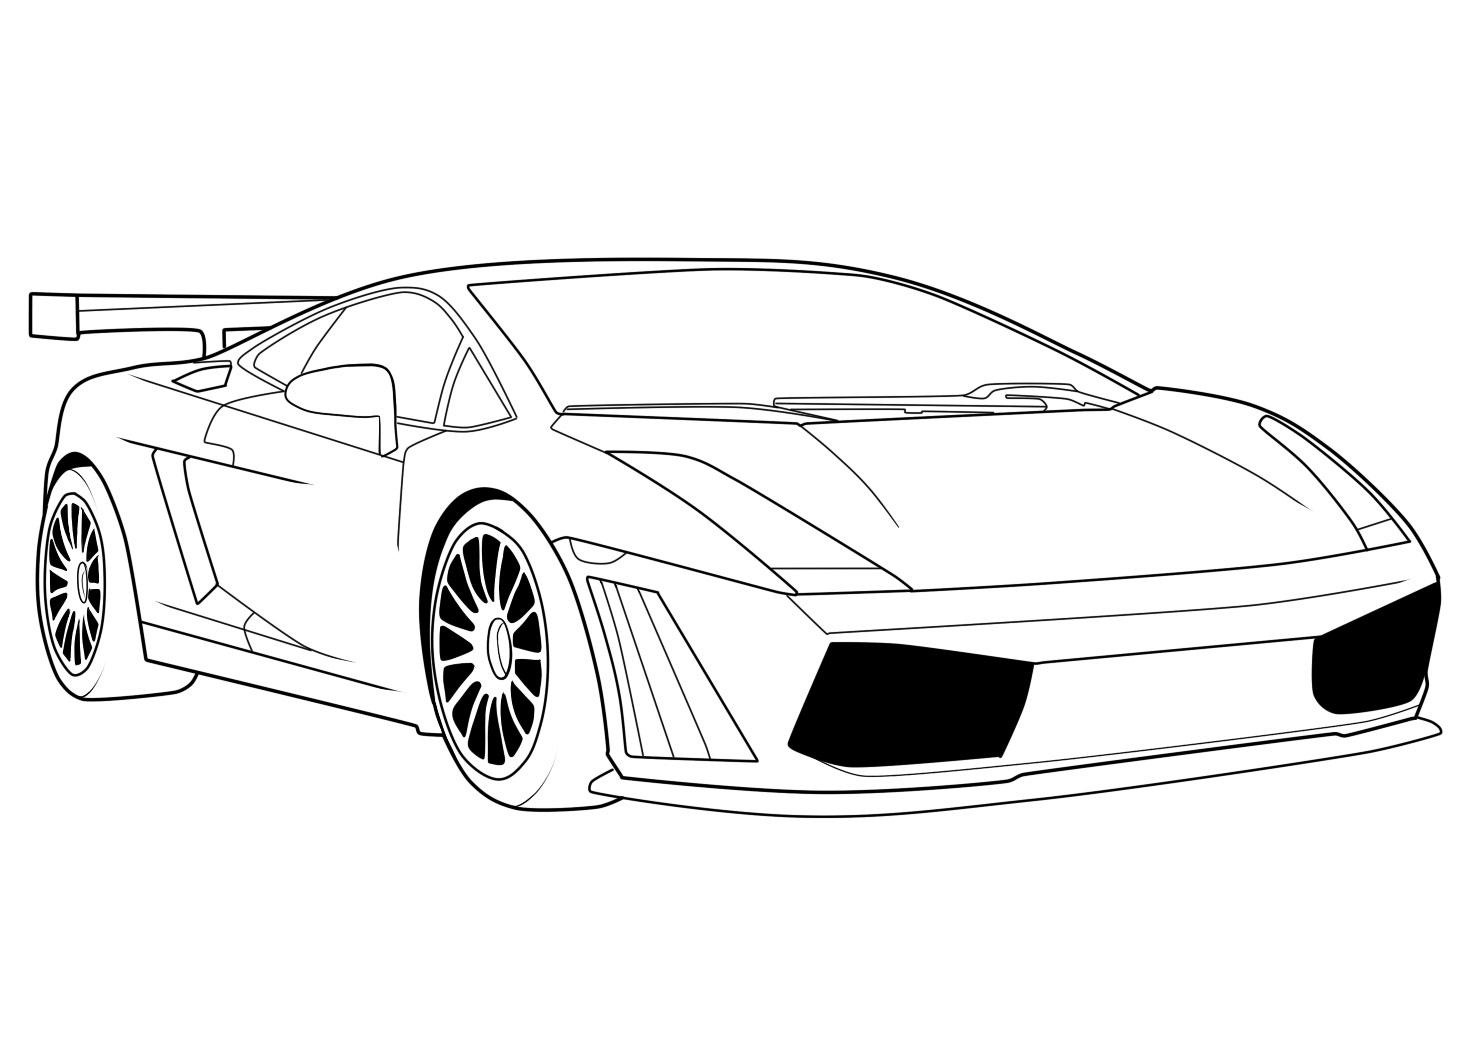 cars colouring in cars coloring pages cool2bkids in cars colouring